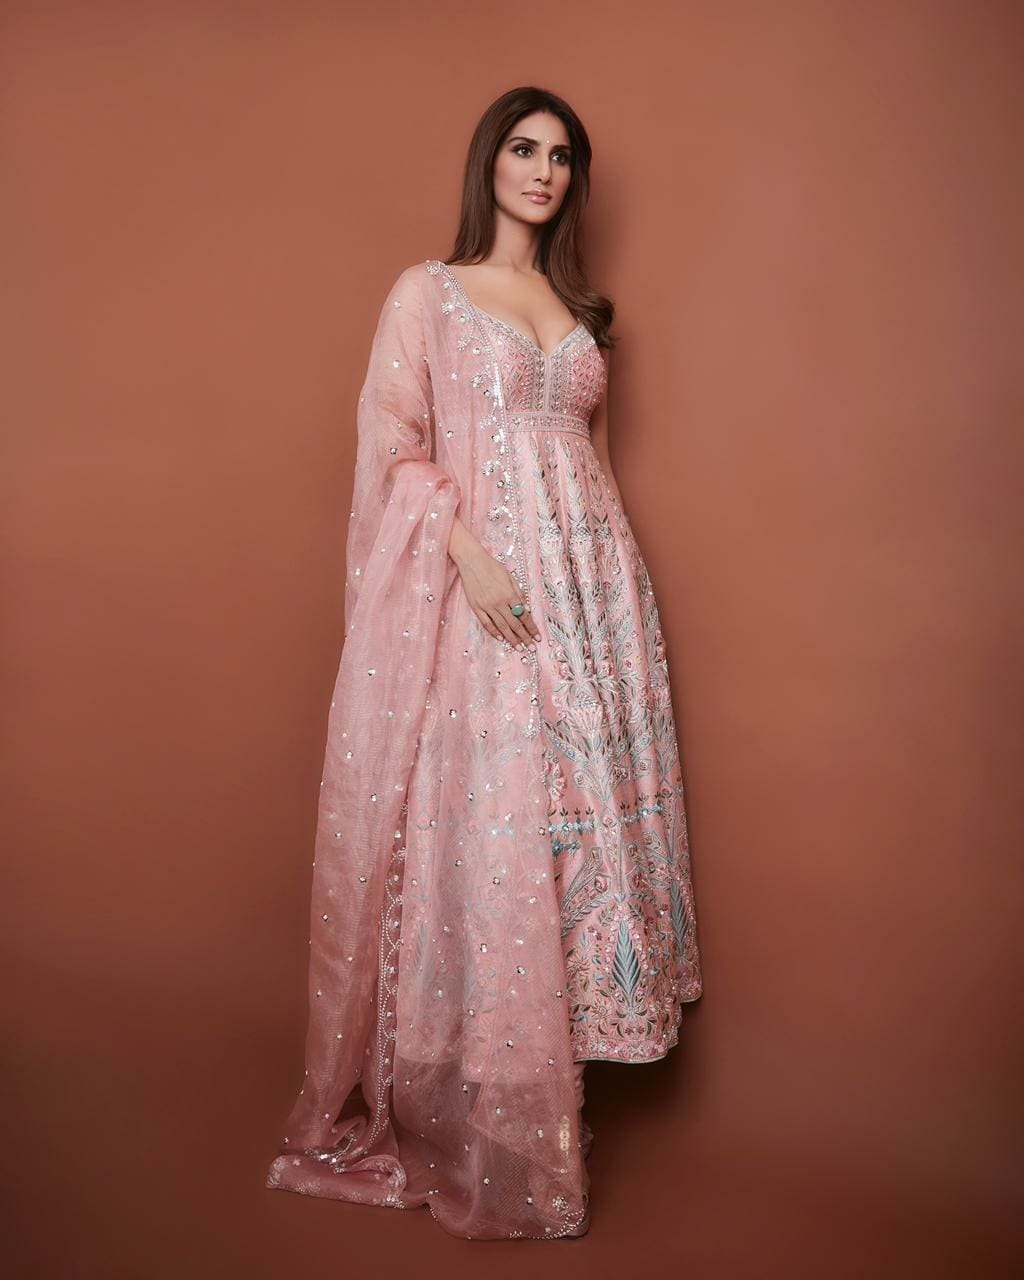 Vaani Kapoor in anita dongre outfit for bell bottom promotions-1